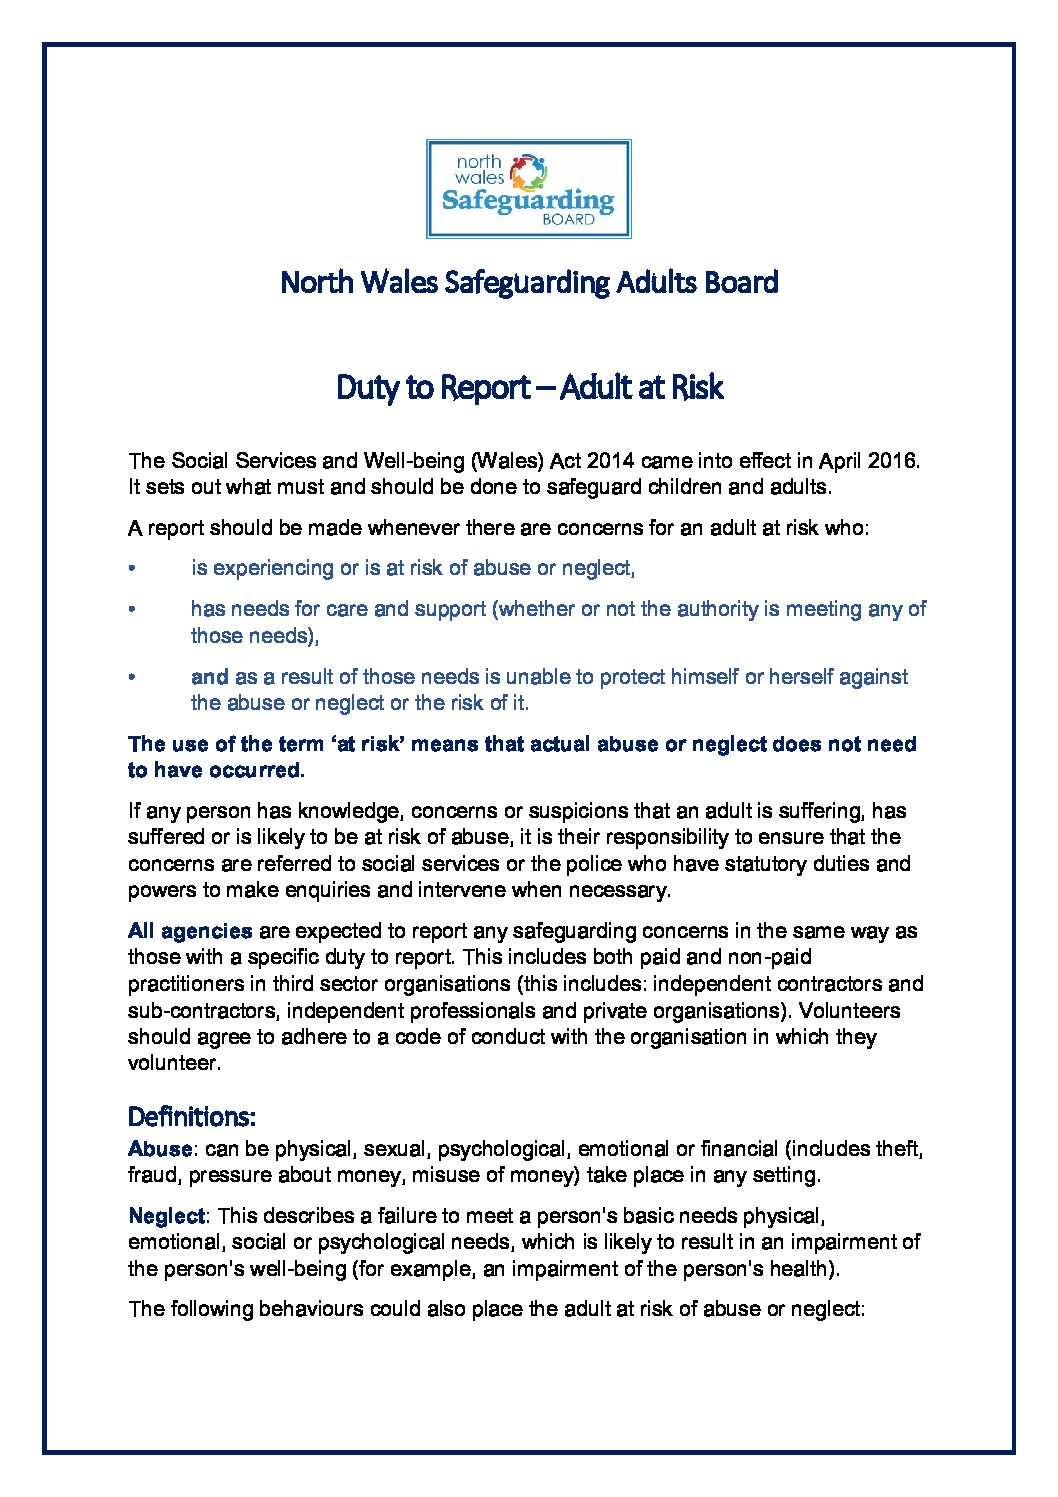 Duty to Report – Adult at Risk